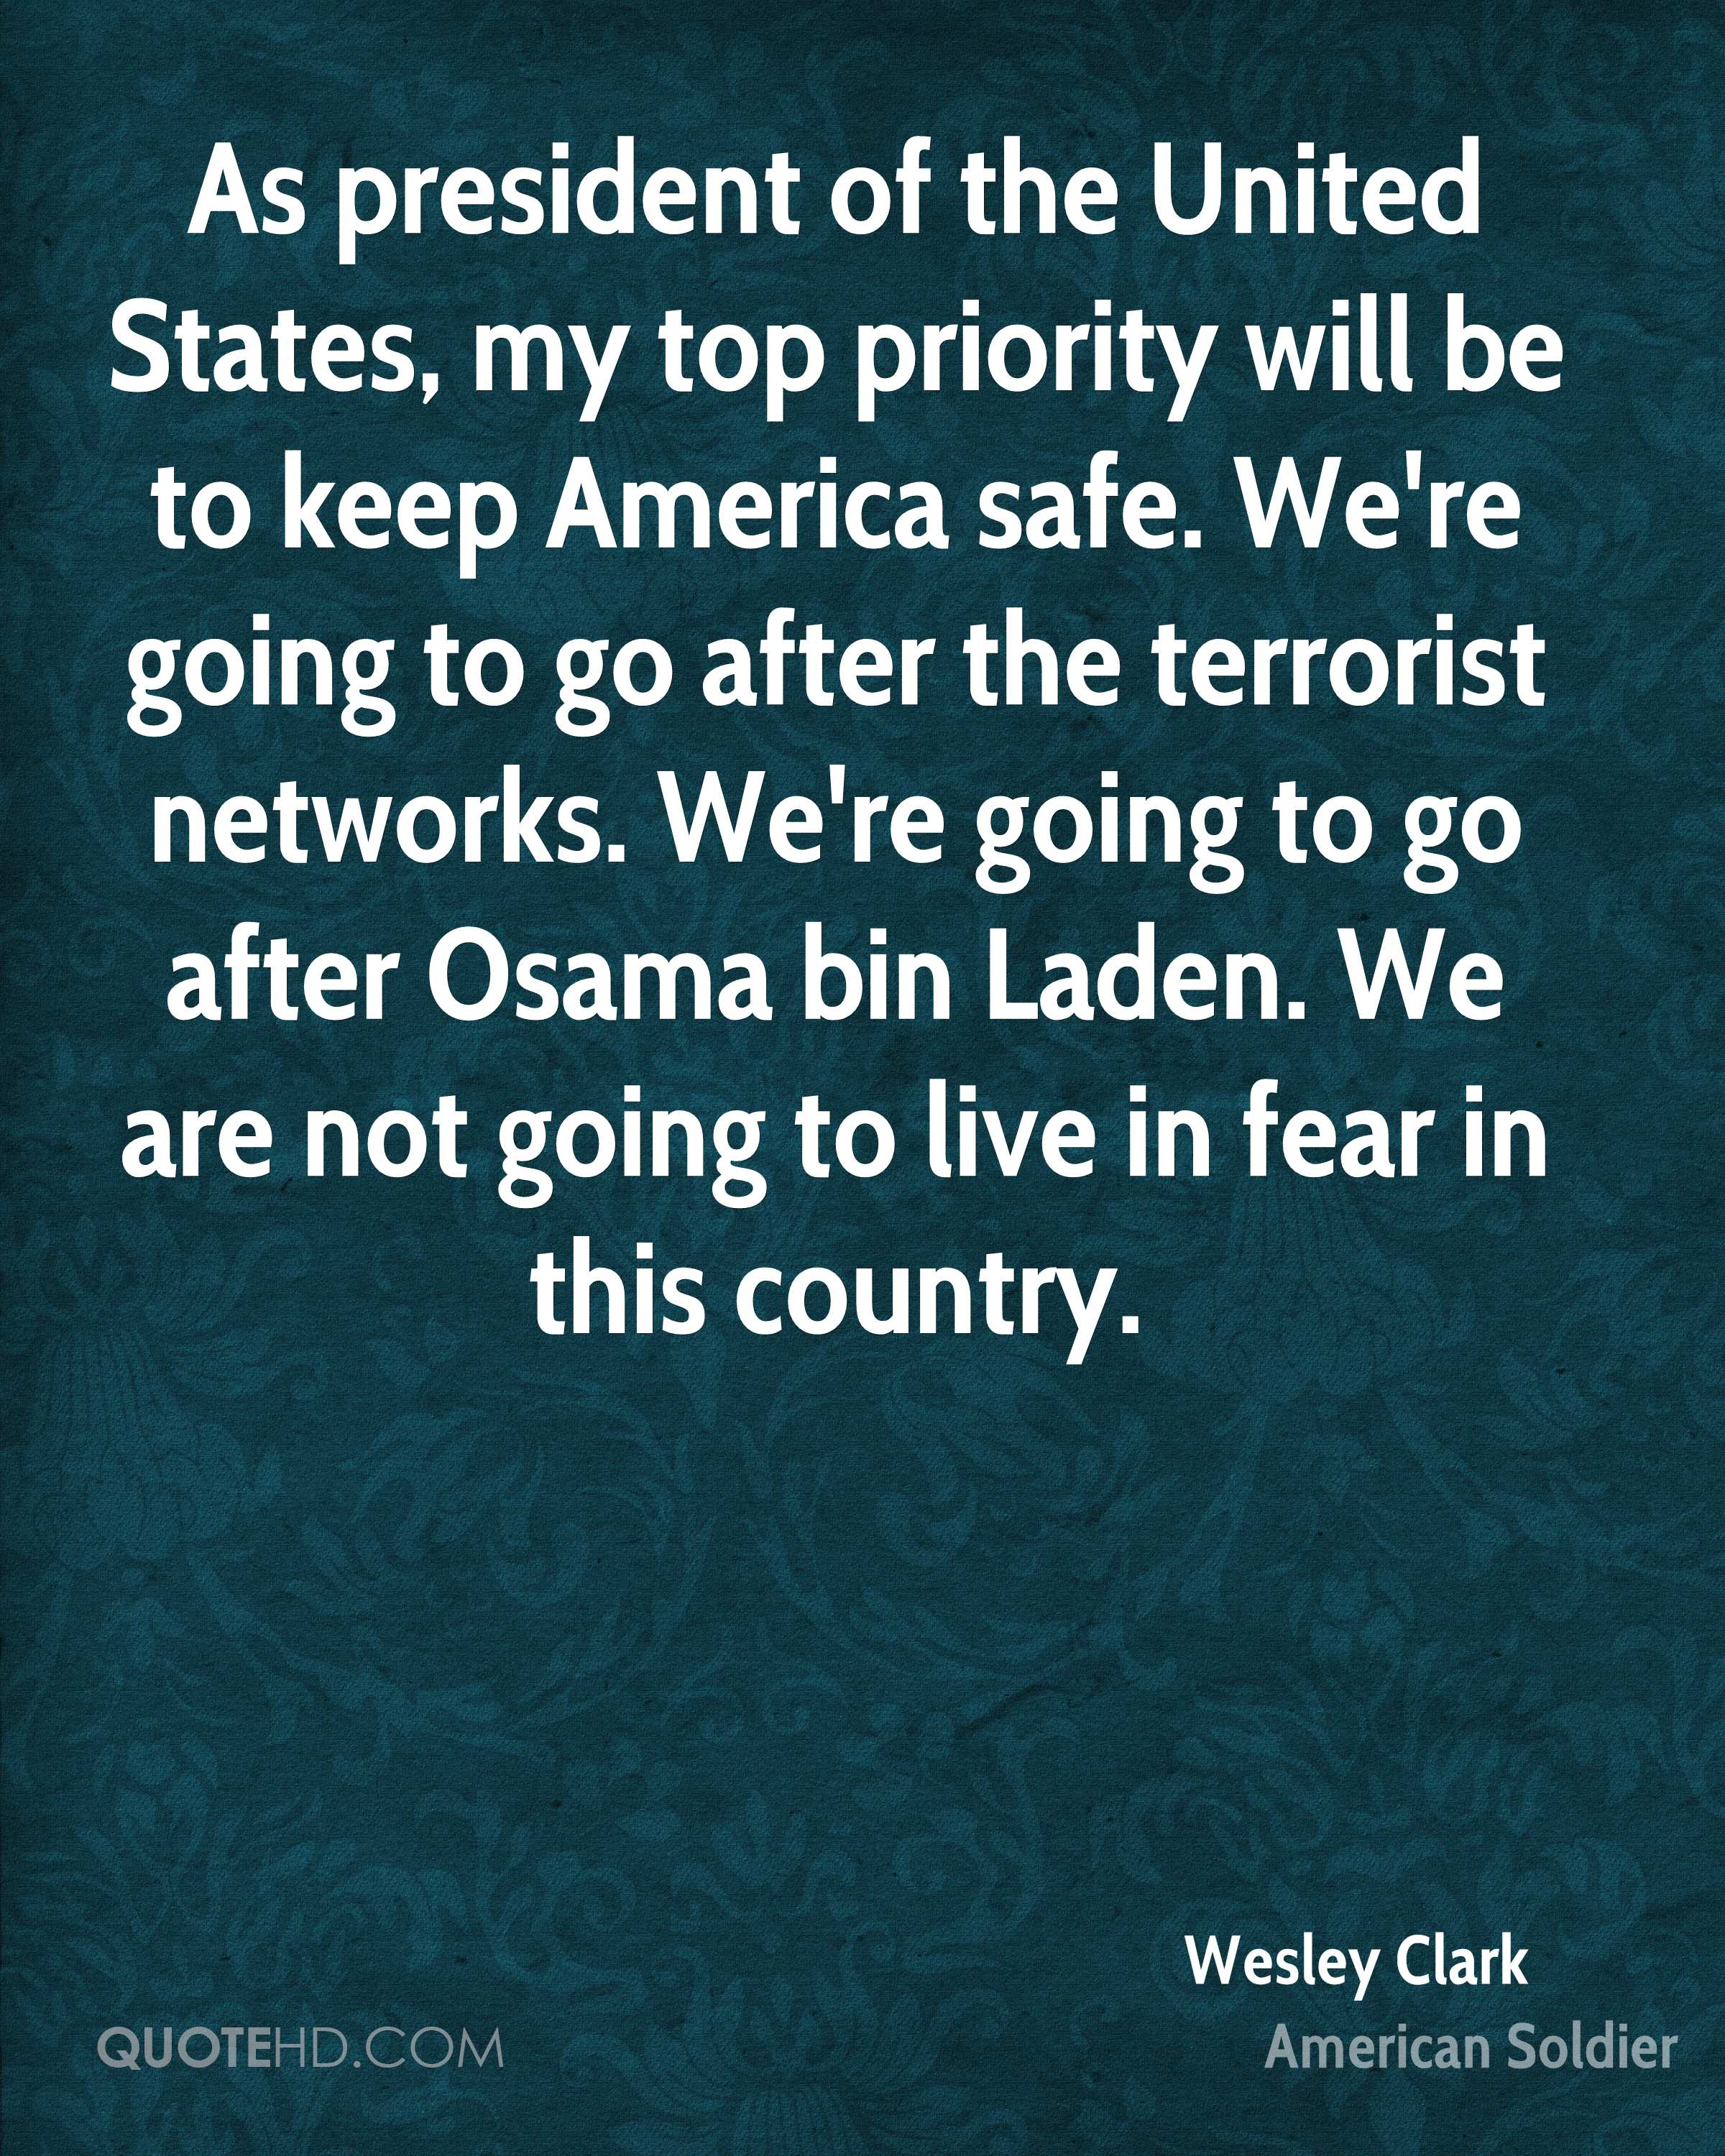 As president of the United States, my top priority will be to keep America safe. We're going to go after the terrorist networks. We're going to go after Osama bin Laden. We are not going to live in fear in this country.